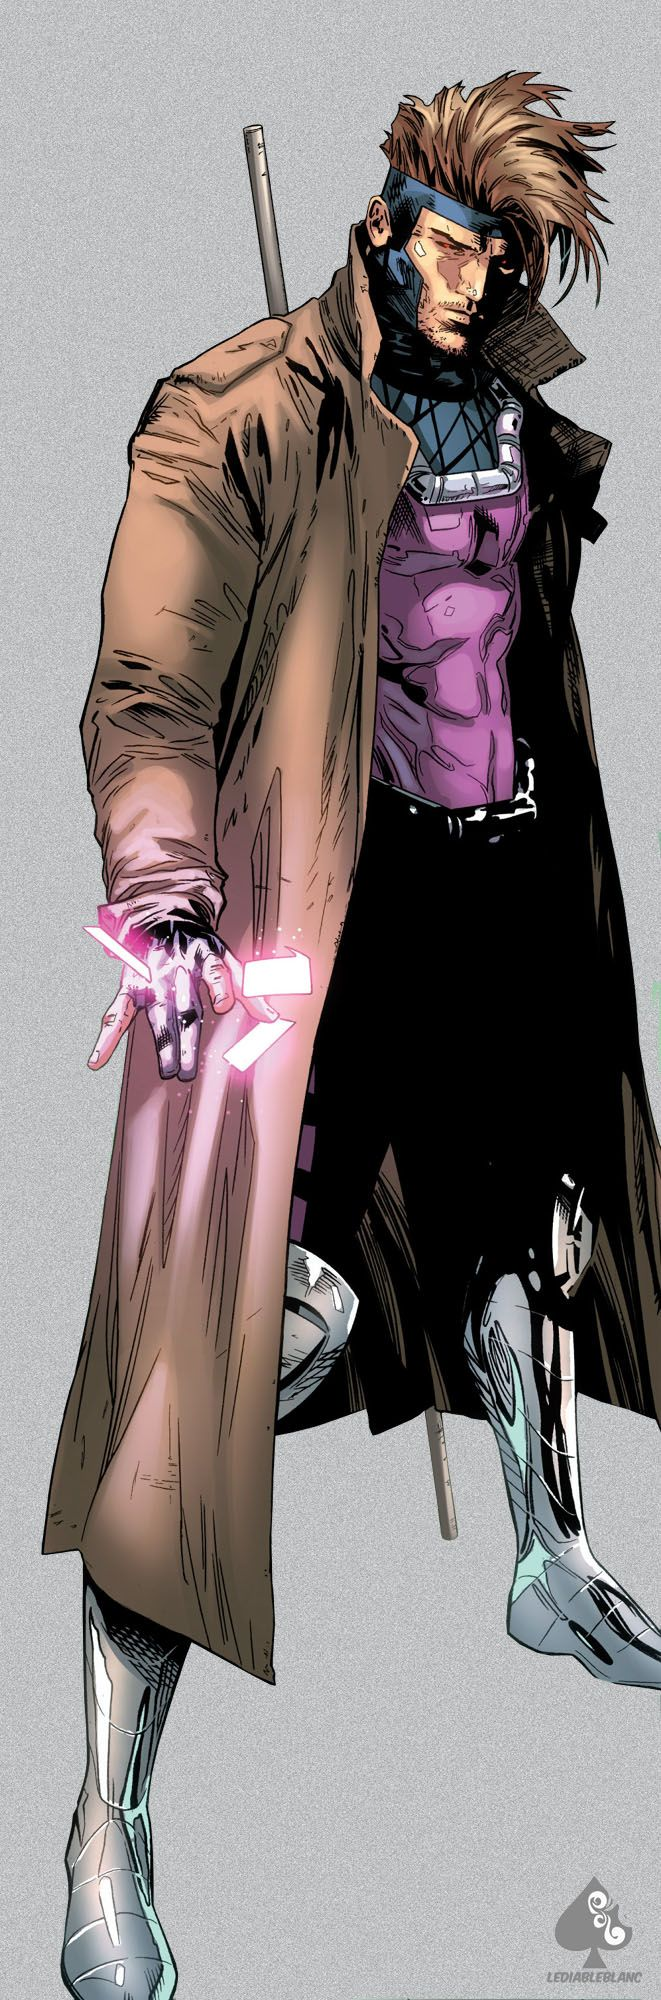 "Gambit by Clay Mann. ""A mutant, Gambit can mentally create, control and manipulate pure kinetic energy to his every whim and desire. He is also incredibly knowledgeable and skilled in card-throwing, hand-to-hand combat, and the use of a bō."" -Wiki"